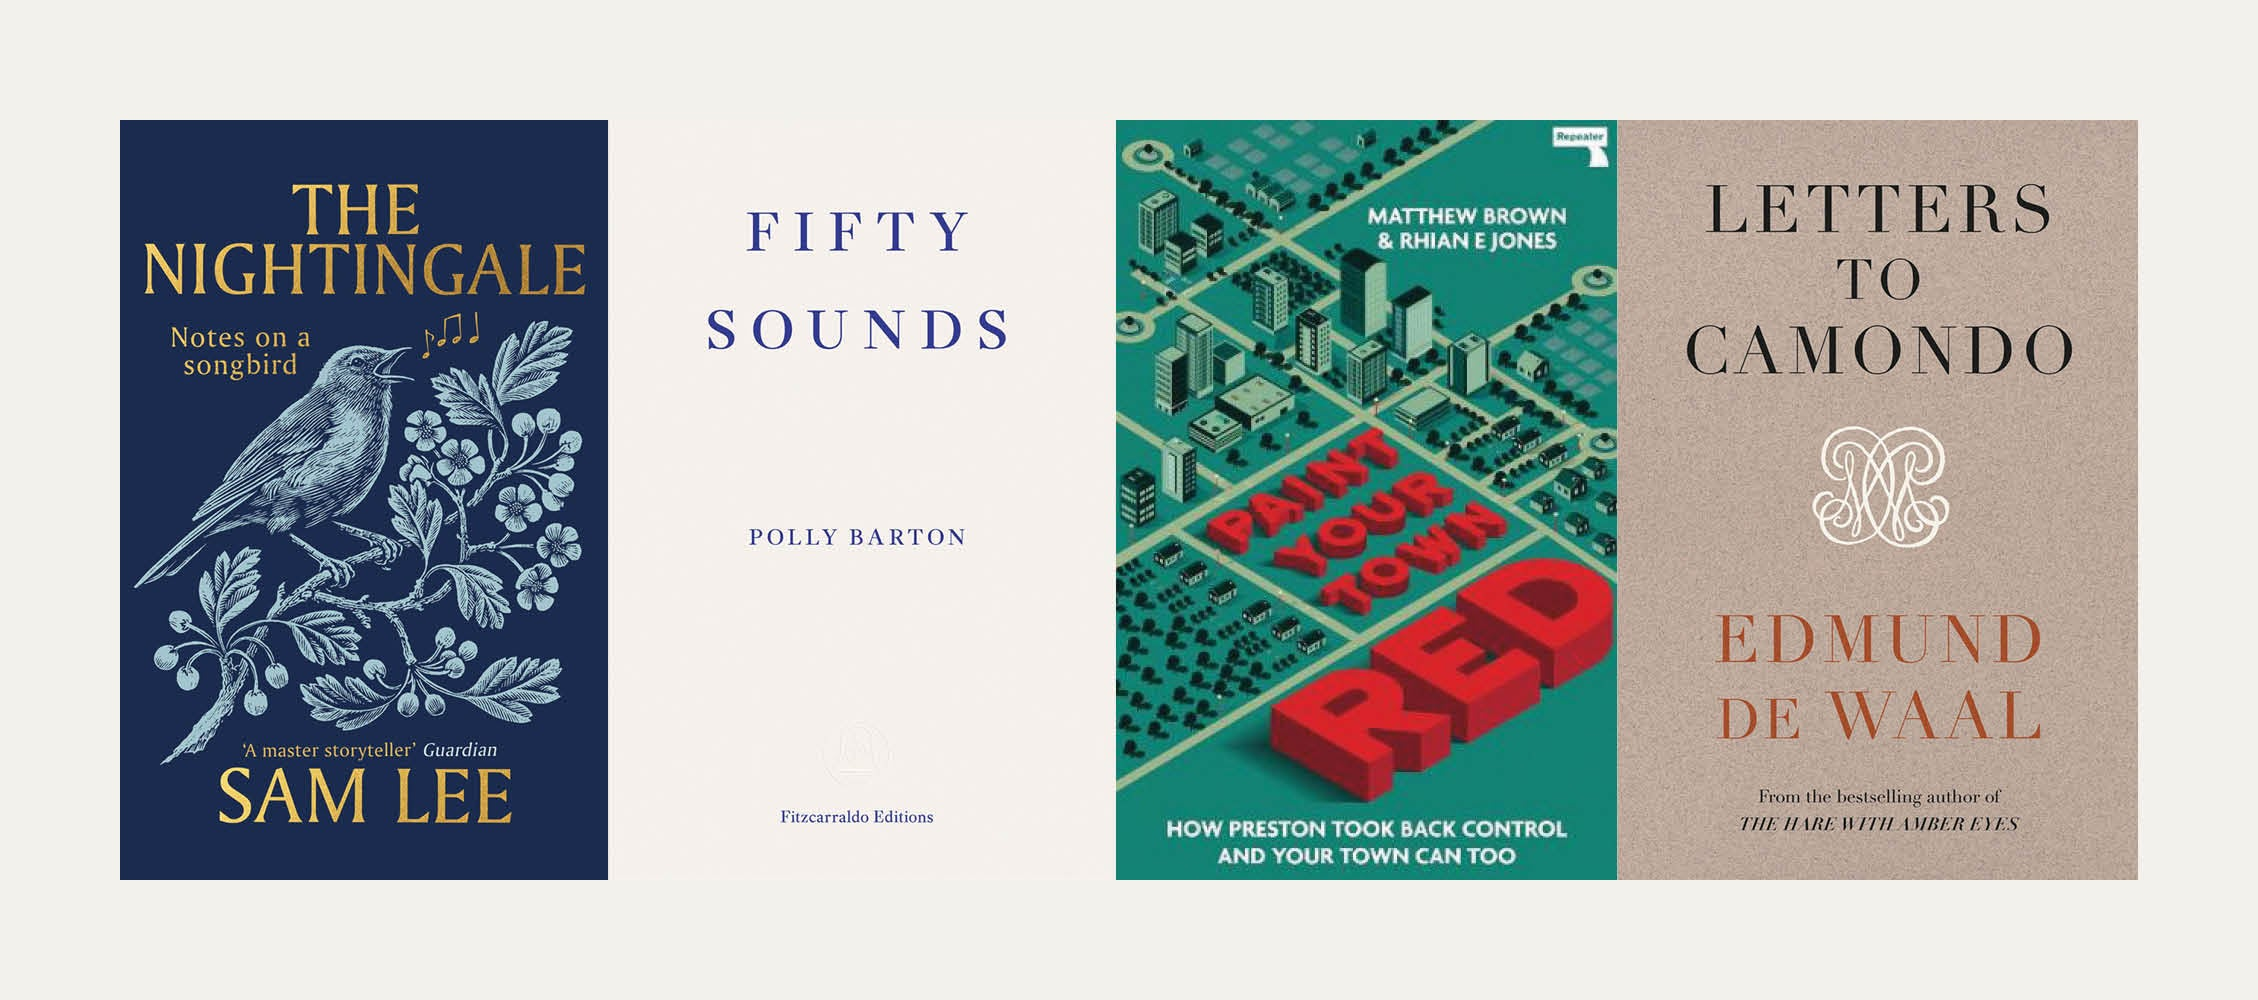 Reviewed in short: New books by Sam Lee, Edmund de Waal, Polly Barton and Matthew Brown and Rhian Jones